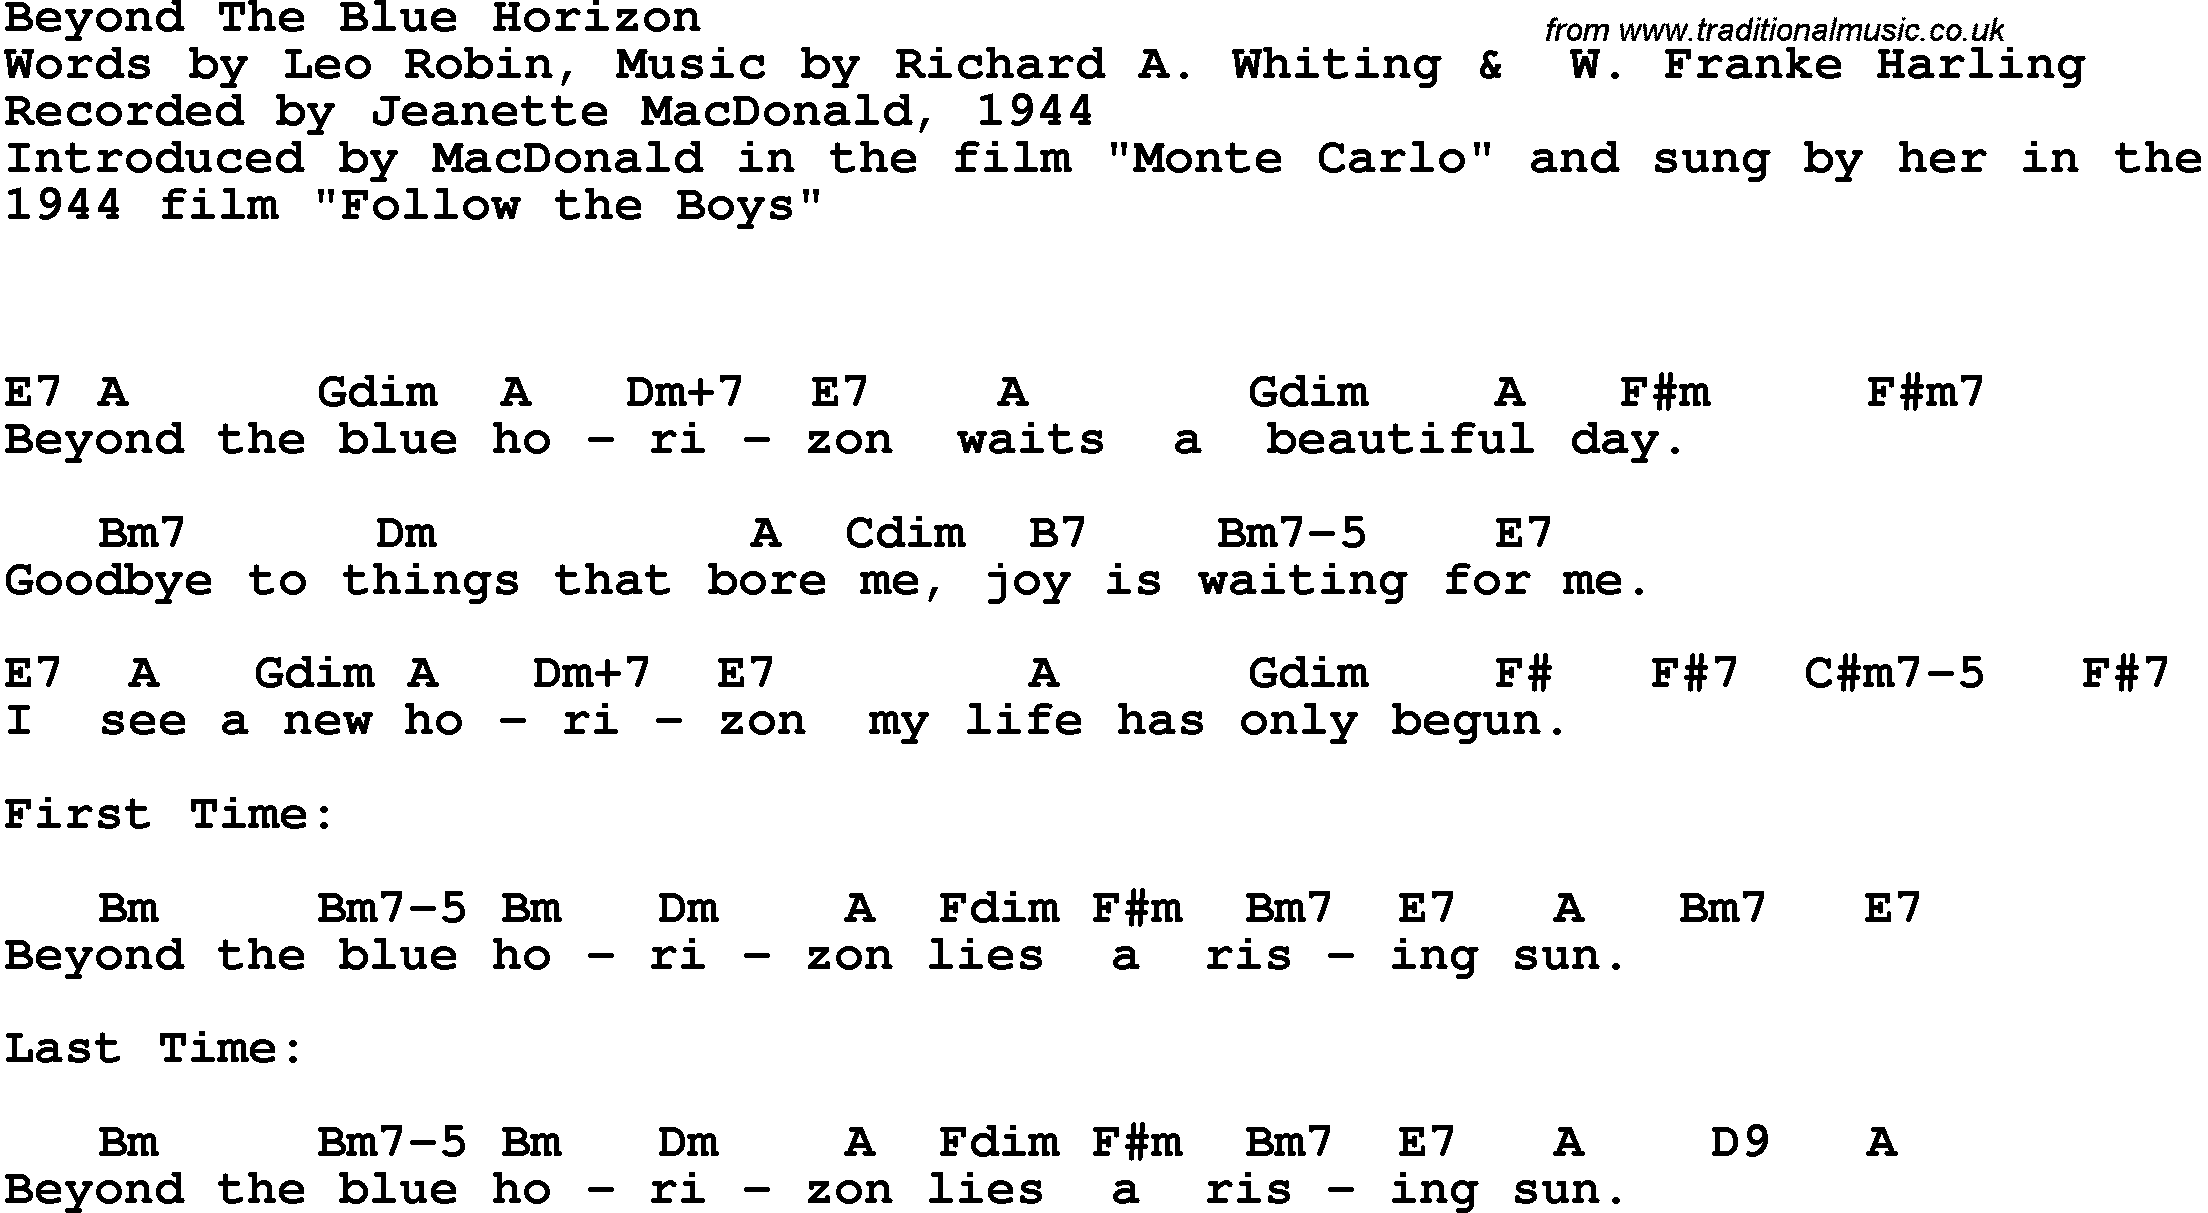 Song Lyrics With Guitar Chords For Beyond The Blue Horizon